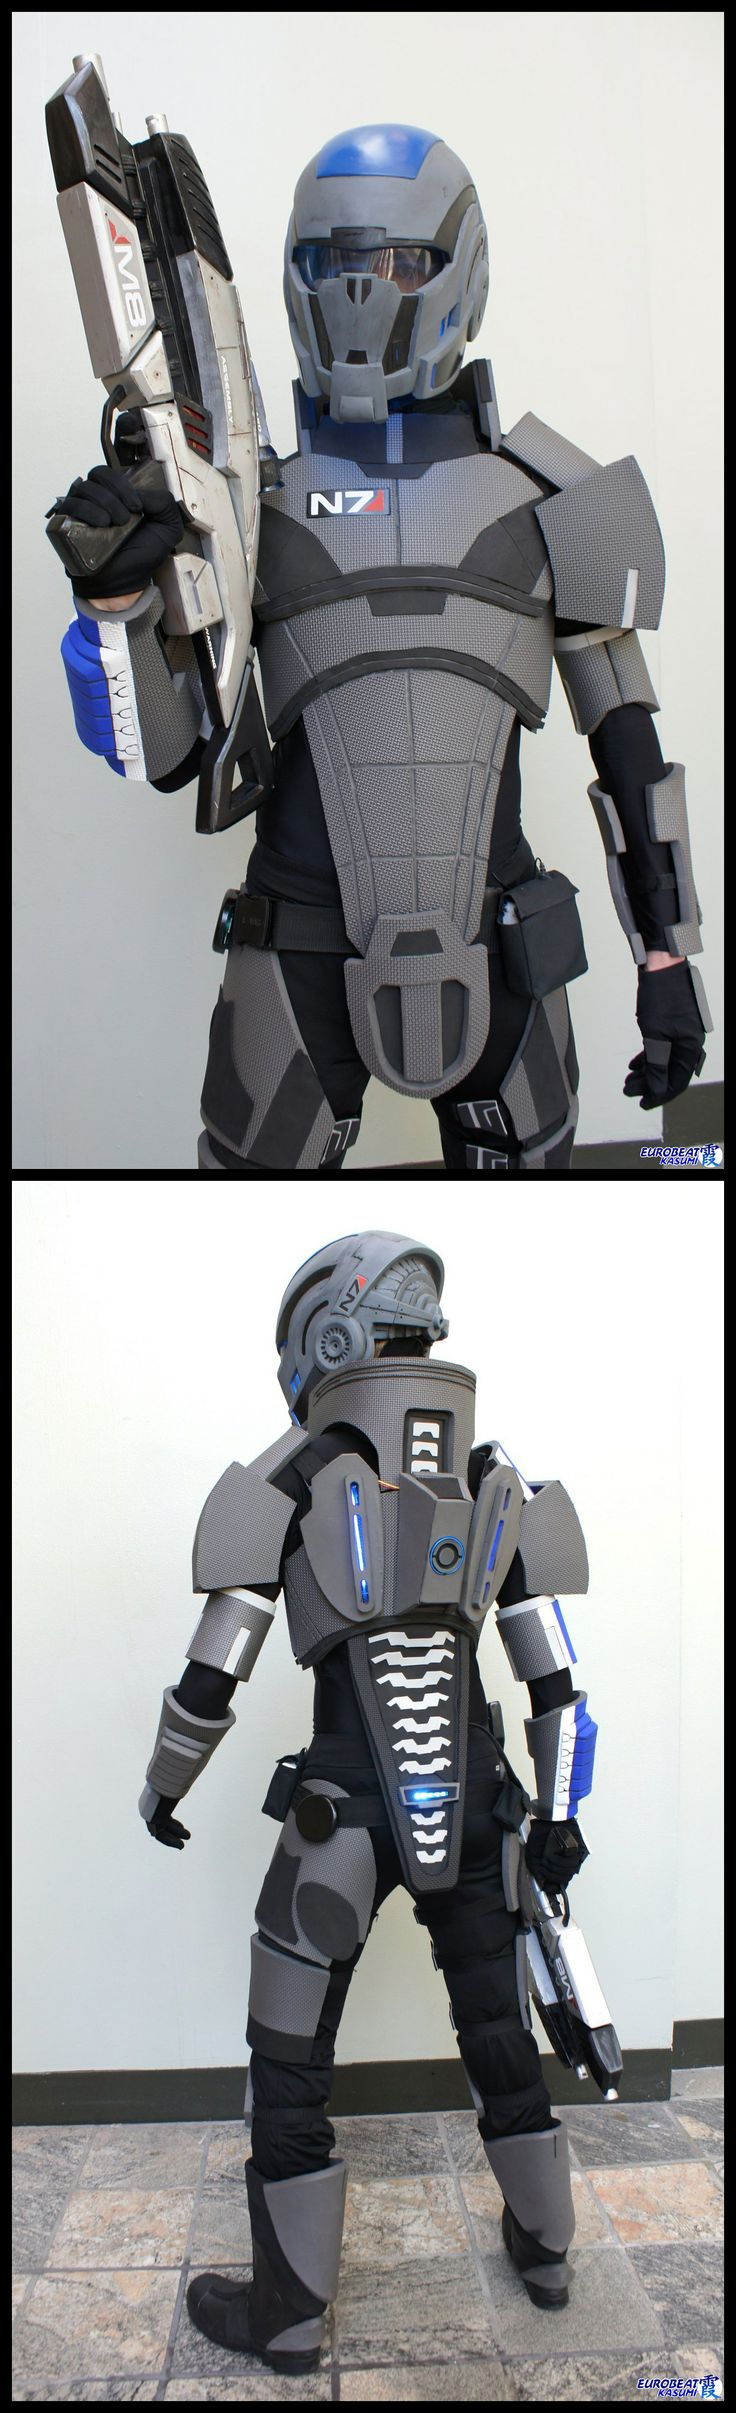 Steven Massey as Commander Shepherd from Mass Effect #cosplay